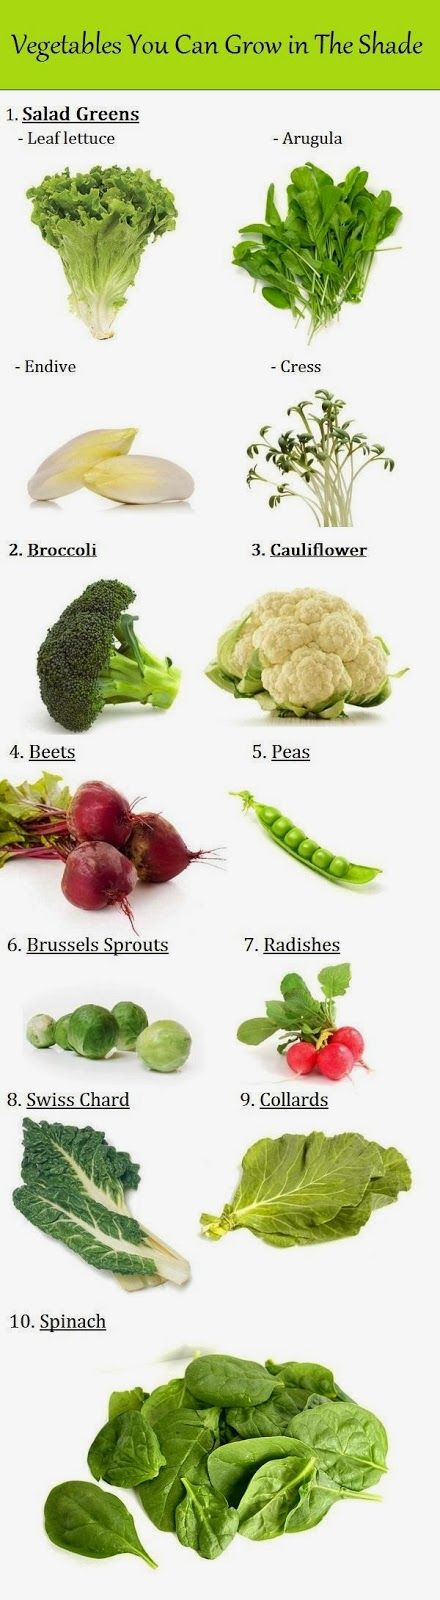 Vegetables You Can Grow in The Shade: